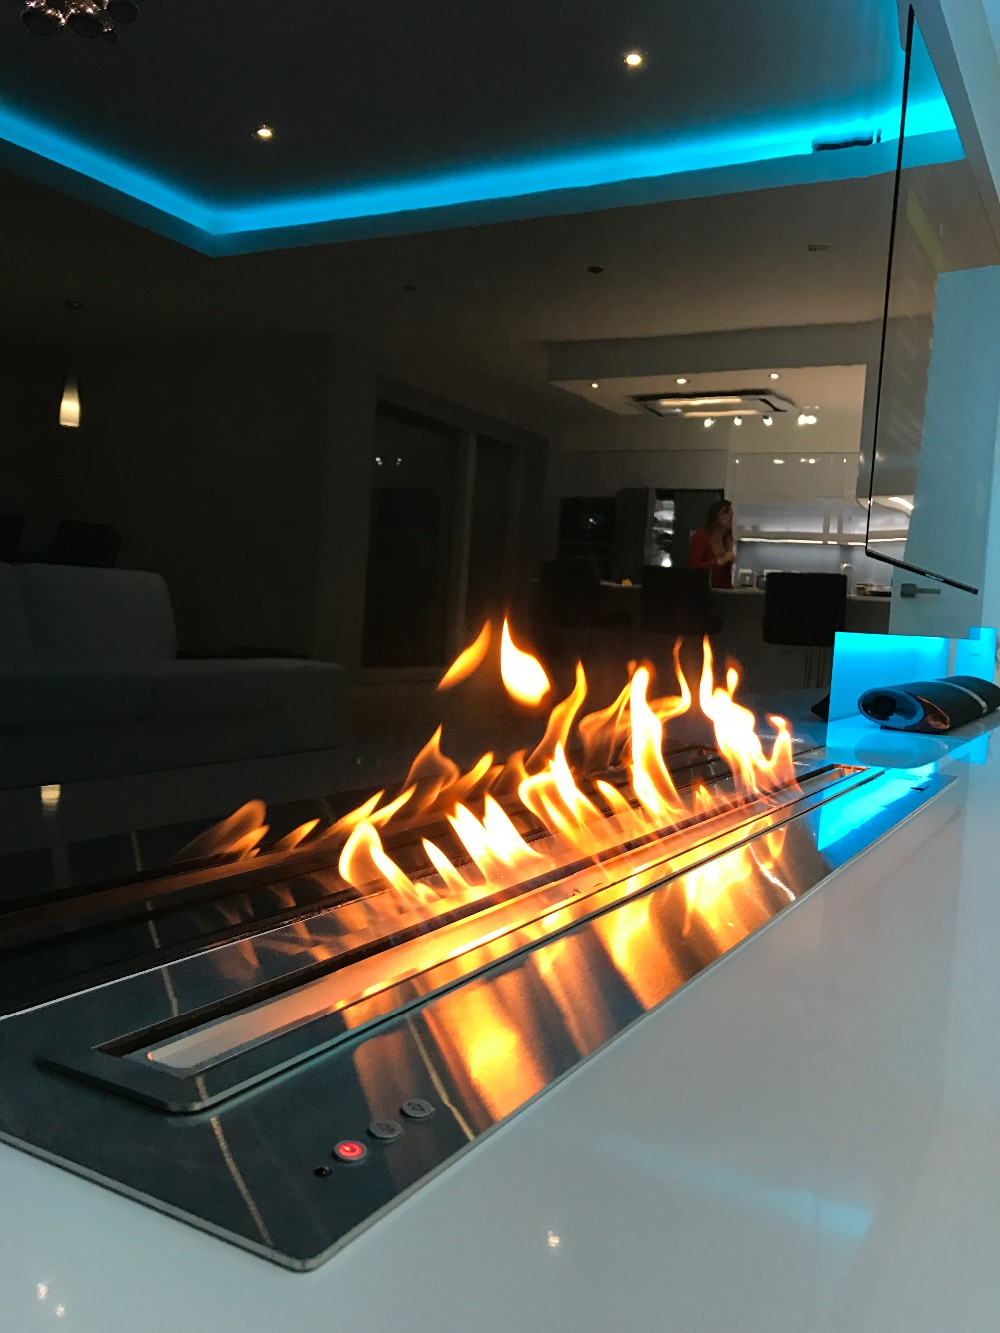 60 Inch Deluxe Inserted Indoor Auto Silver Or Black Remote Control Bio Ethanol Fireplace